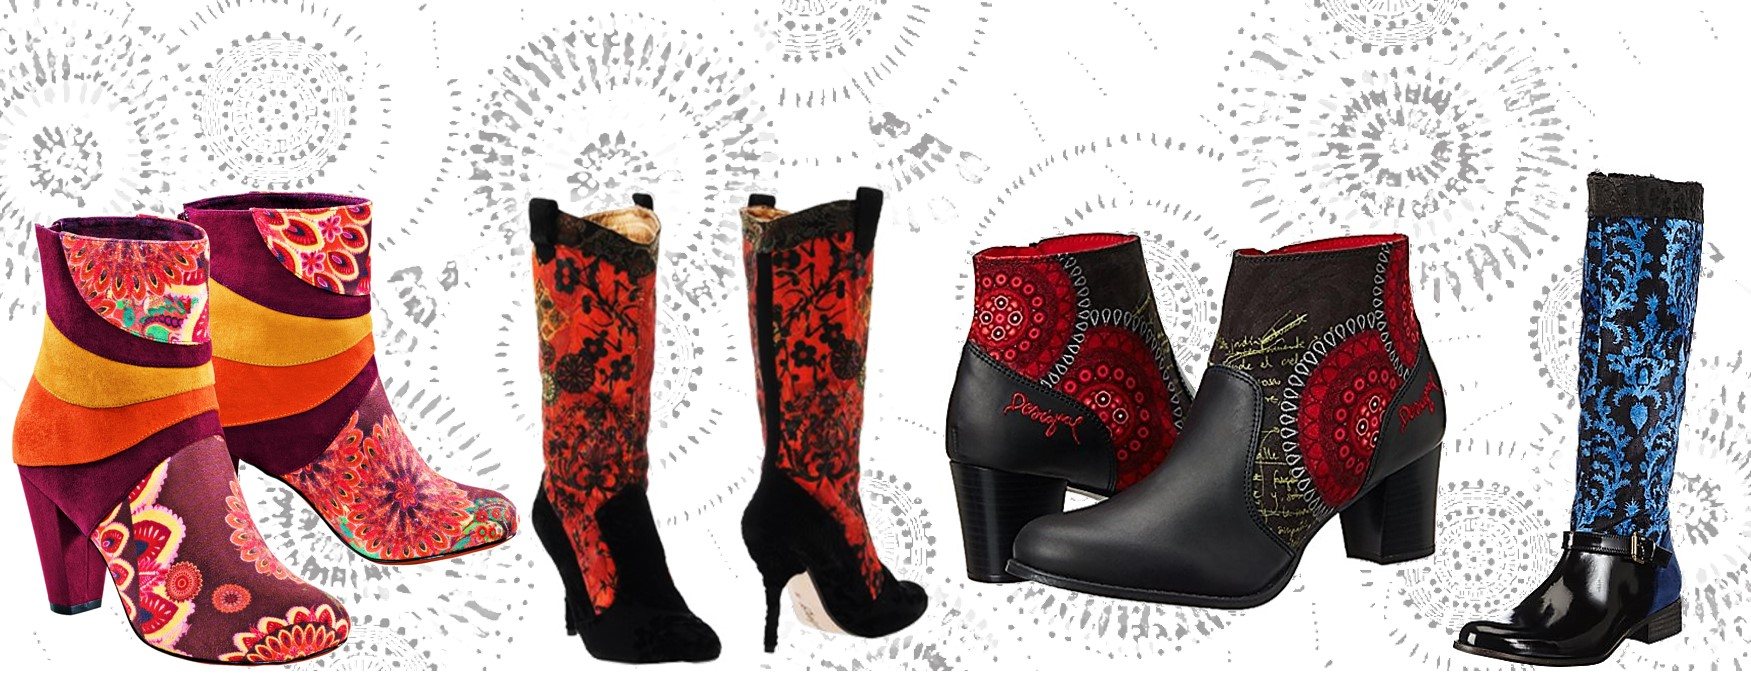 desigual-boots-embroidery-style-jinx-sale-winter-fall